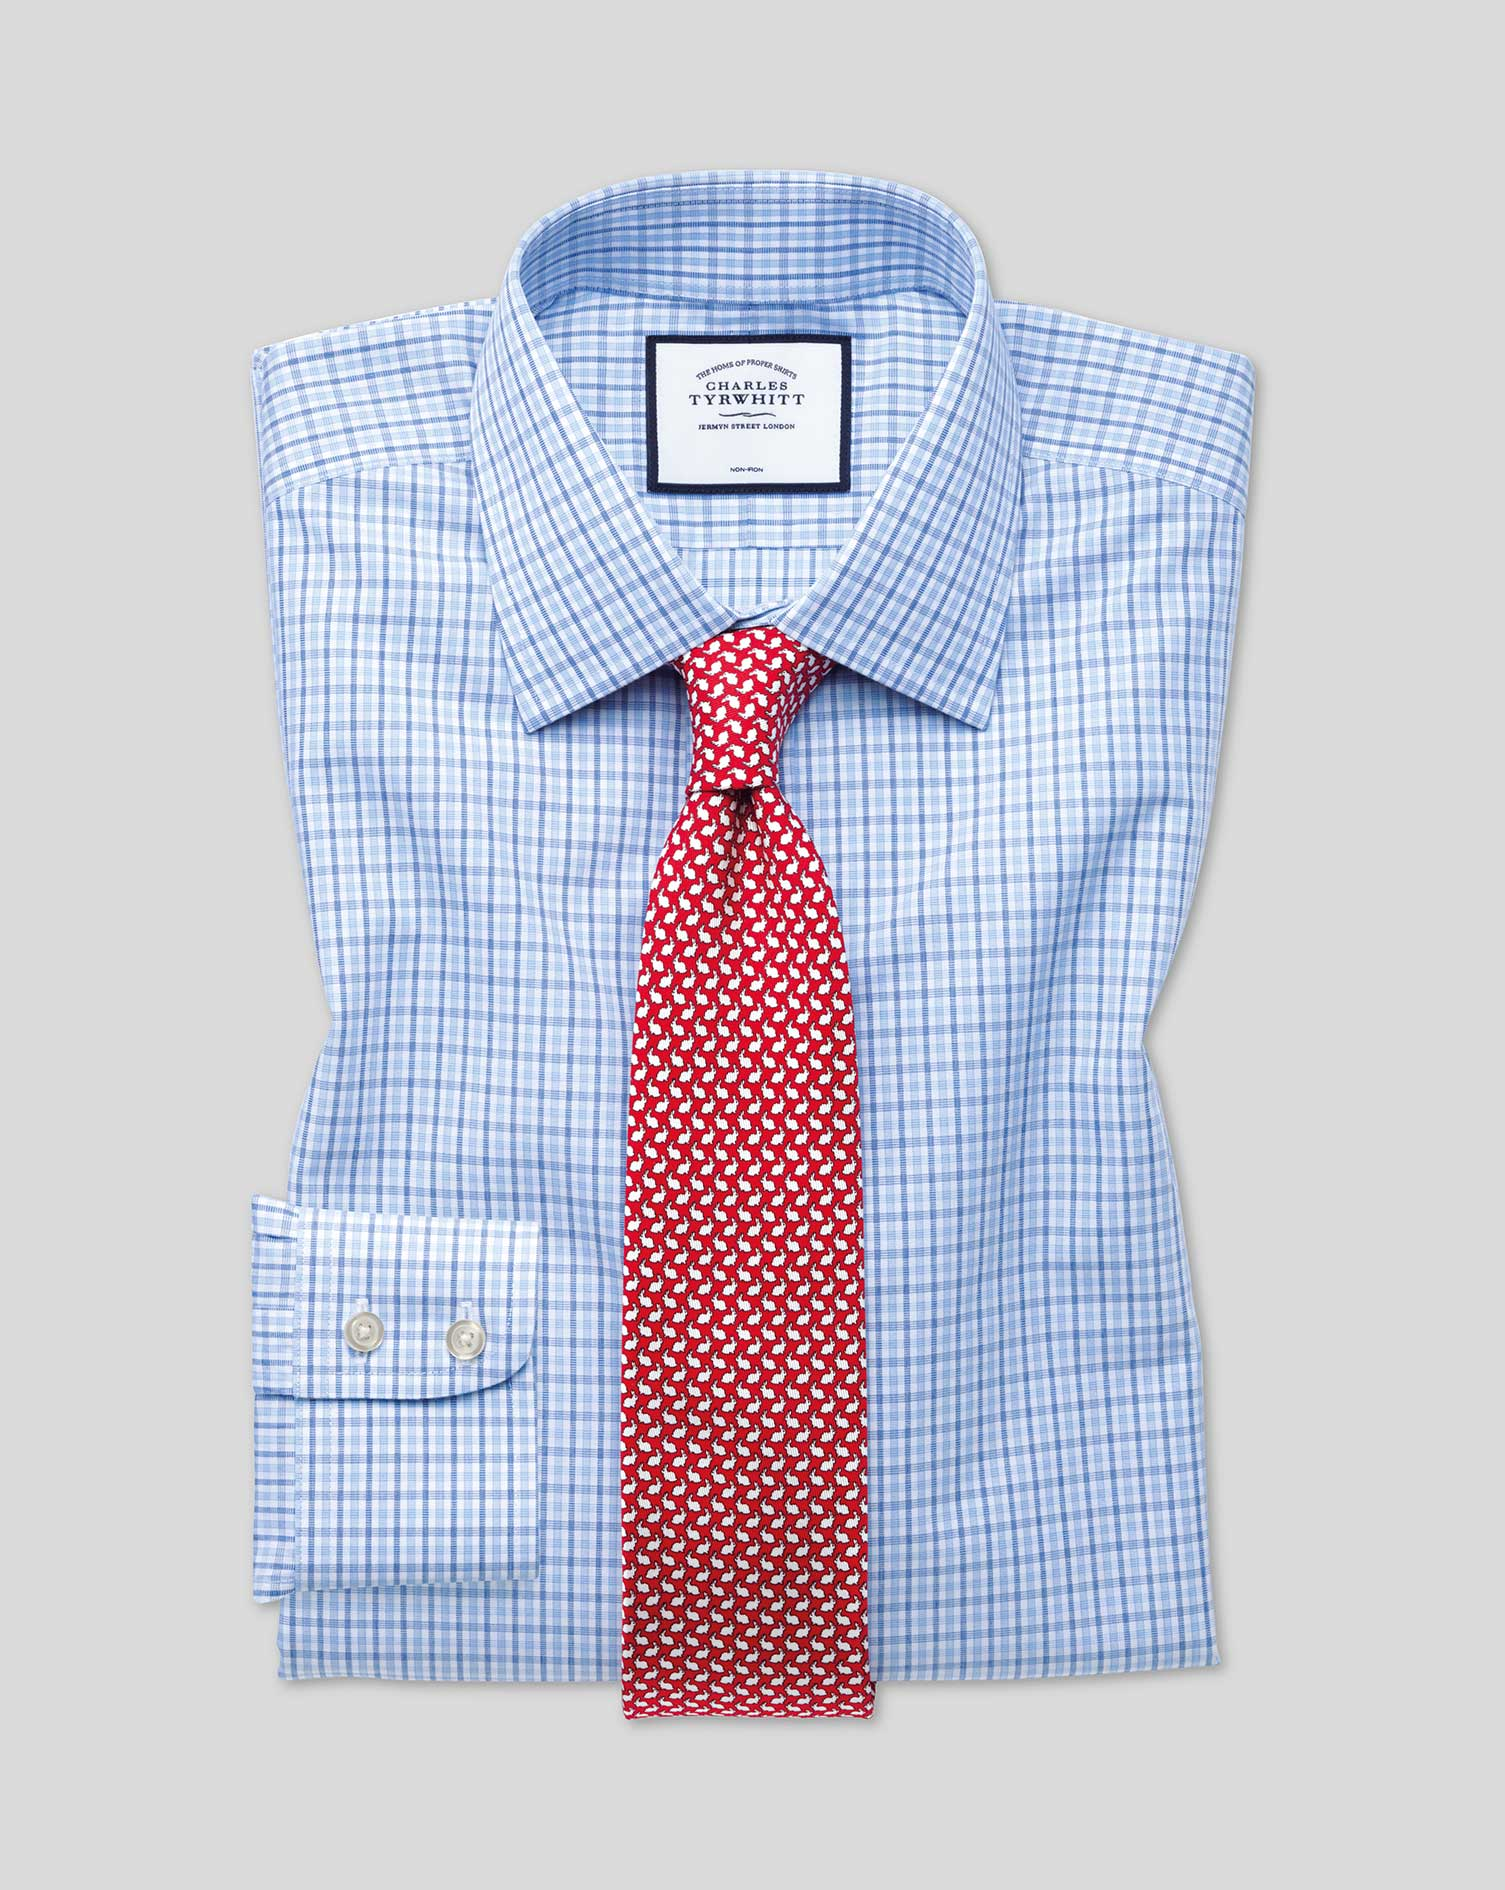 Classic Fit Non-Iron Blue and Sky Blue Check Cotton Formal Shirt Single Cuff Size 16/34 by Charles T